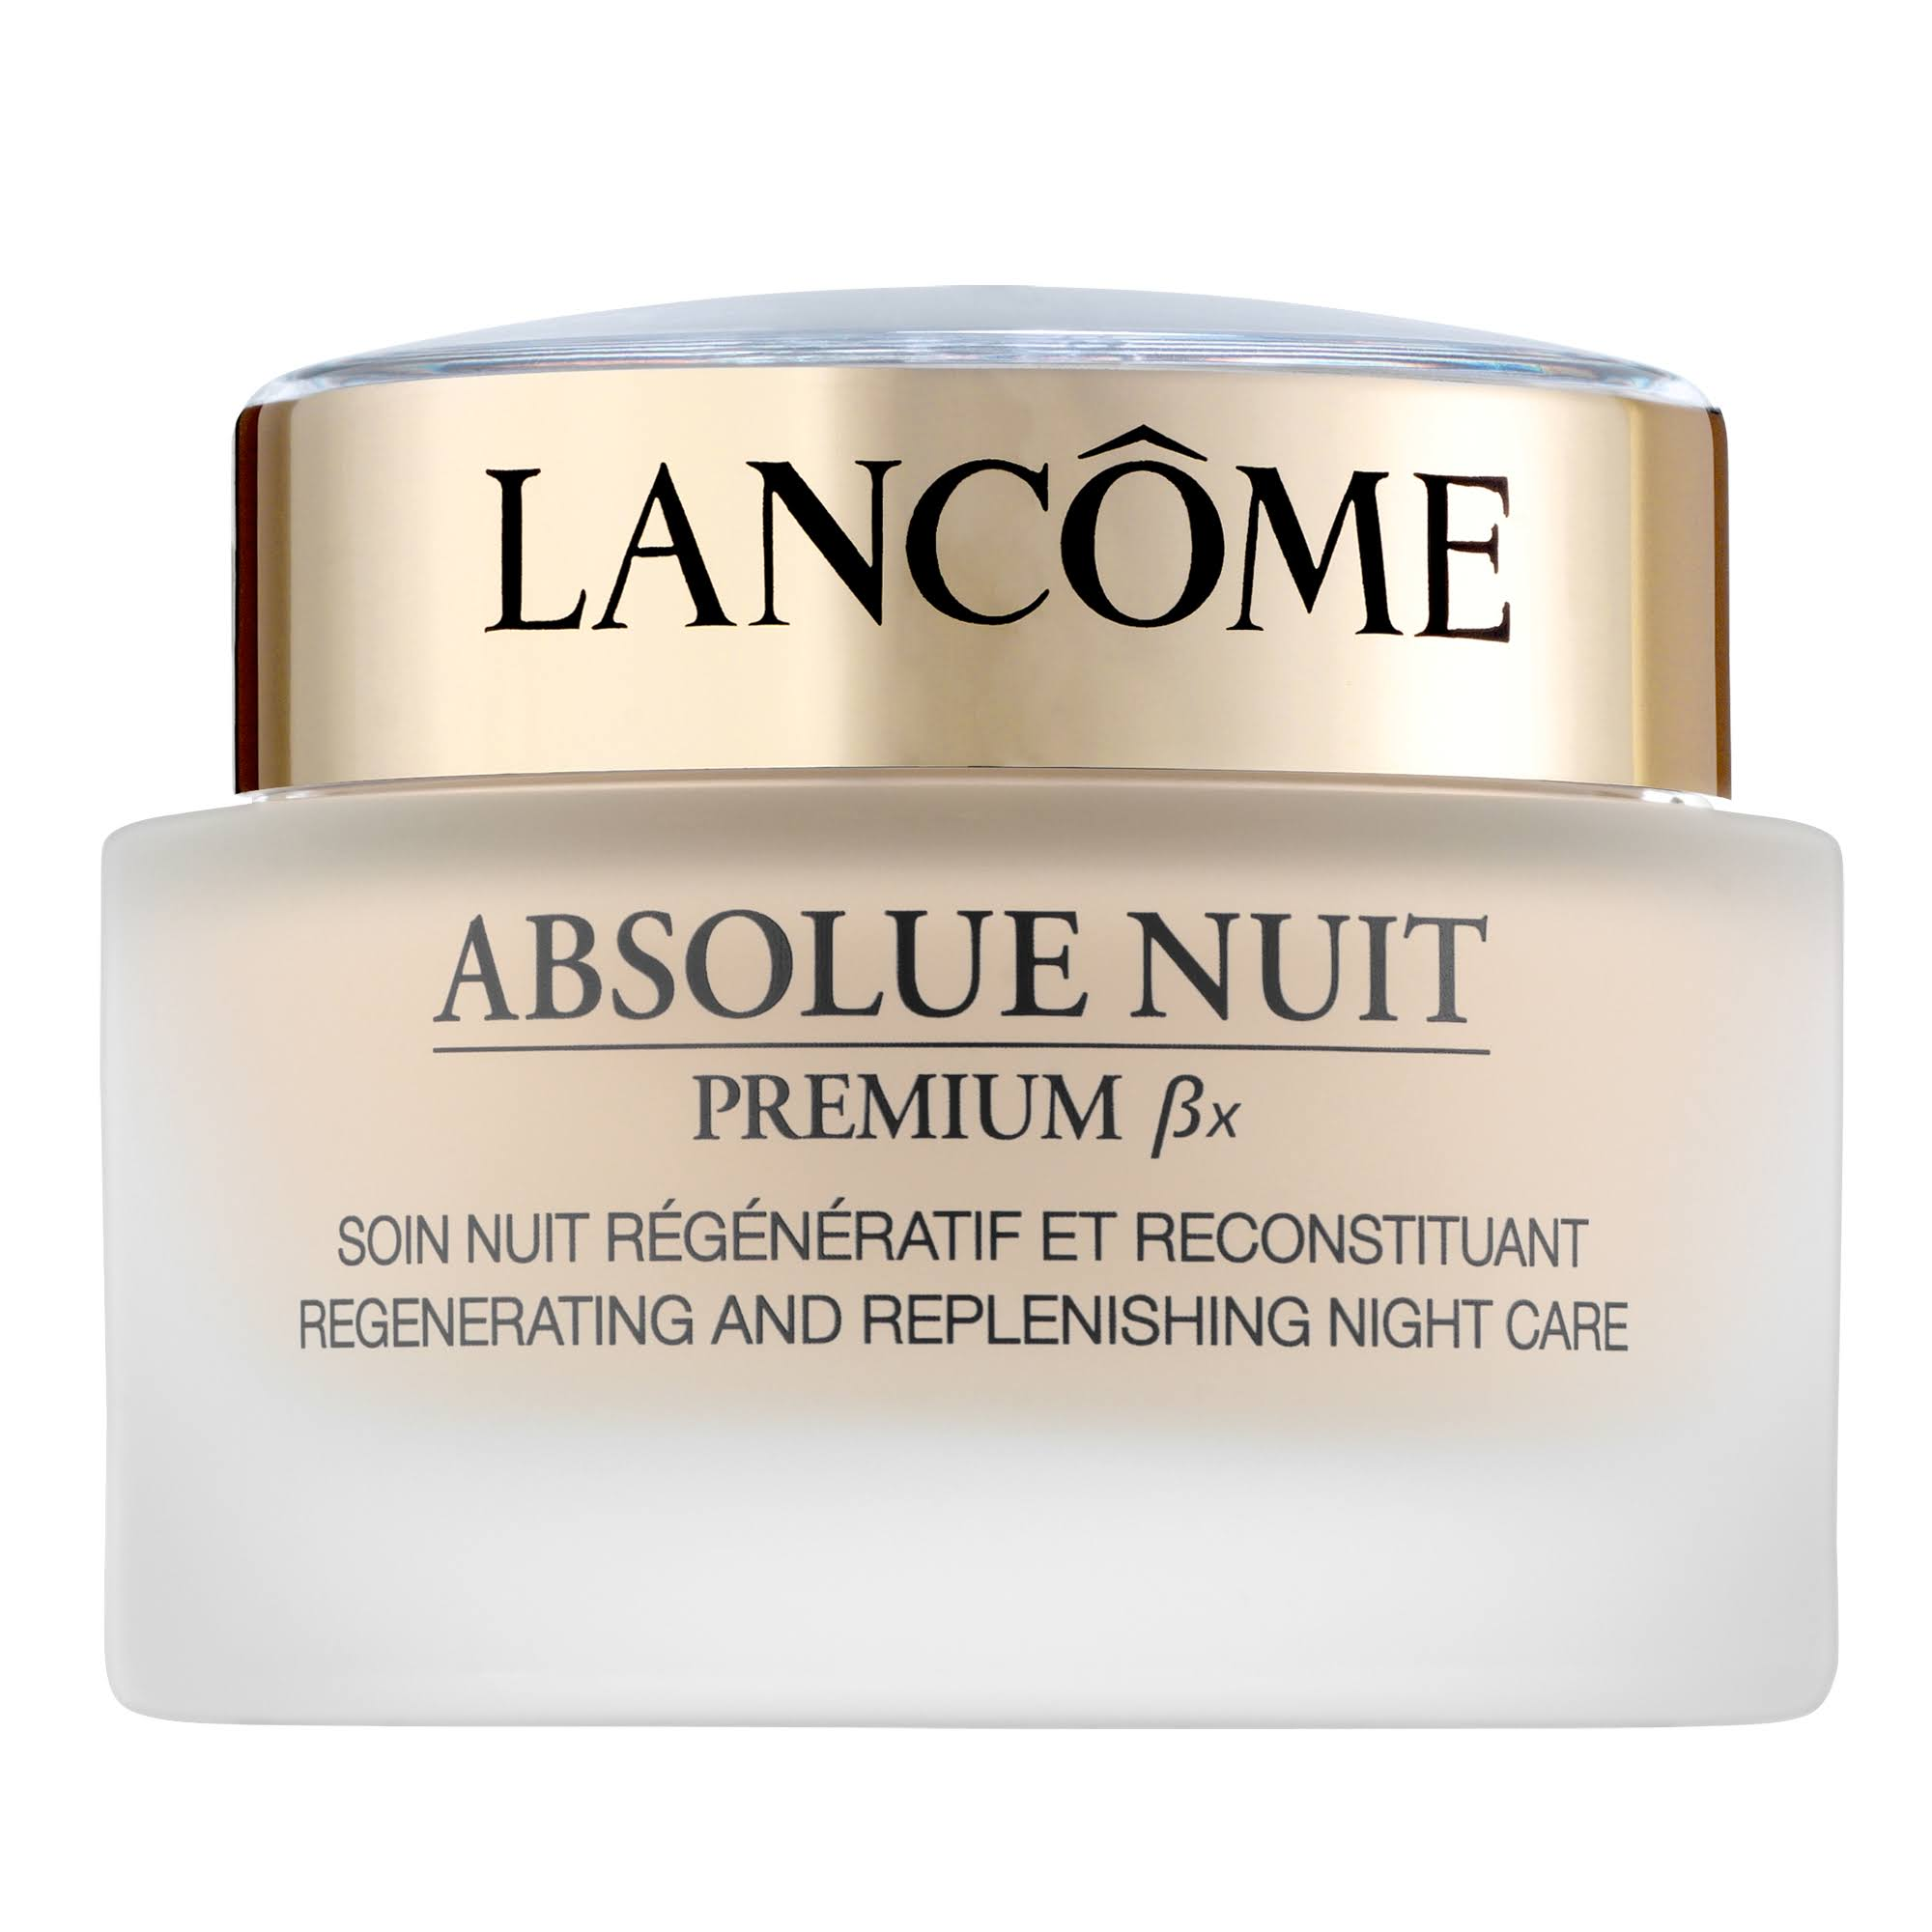 Lancome Absolue Nuit - Regenerating & Replenishing Night Cream - 50ml